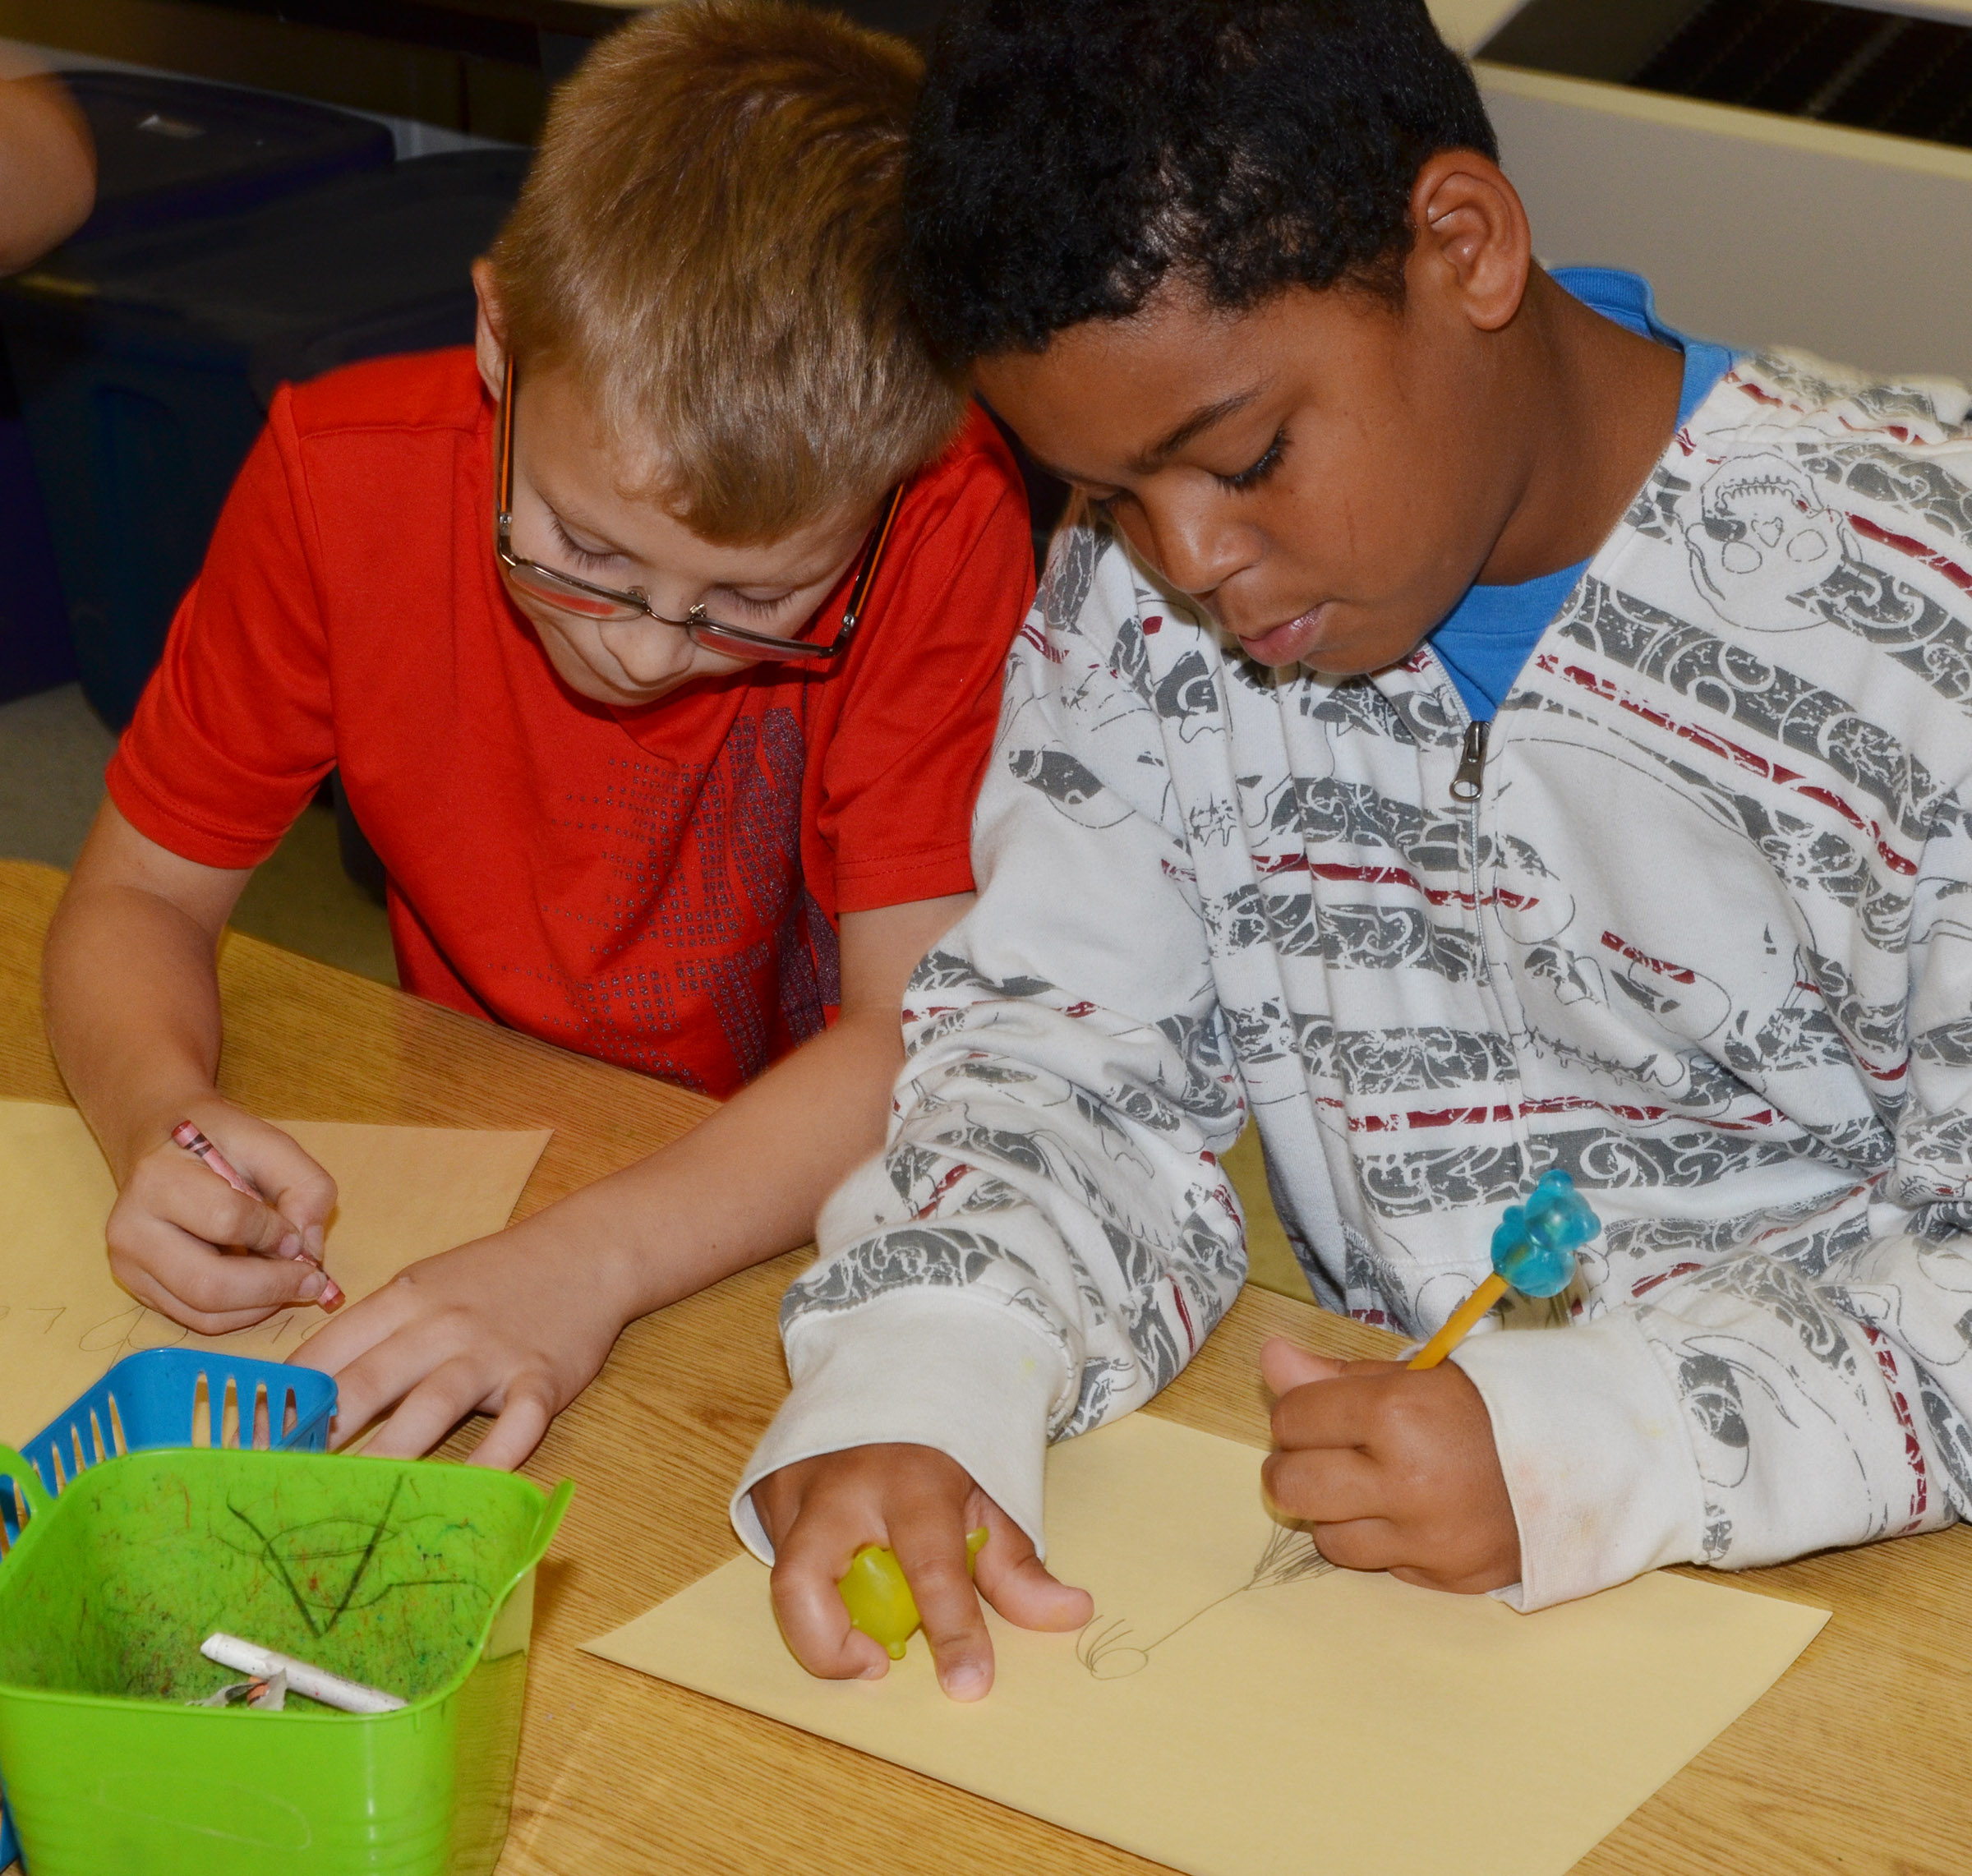 CES fourth-graders Ethan Irwin, at left, and Bryson Groves draw pictures of themselves with their grandparents.